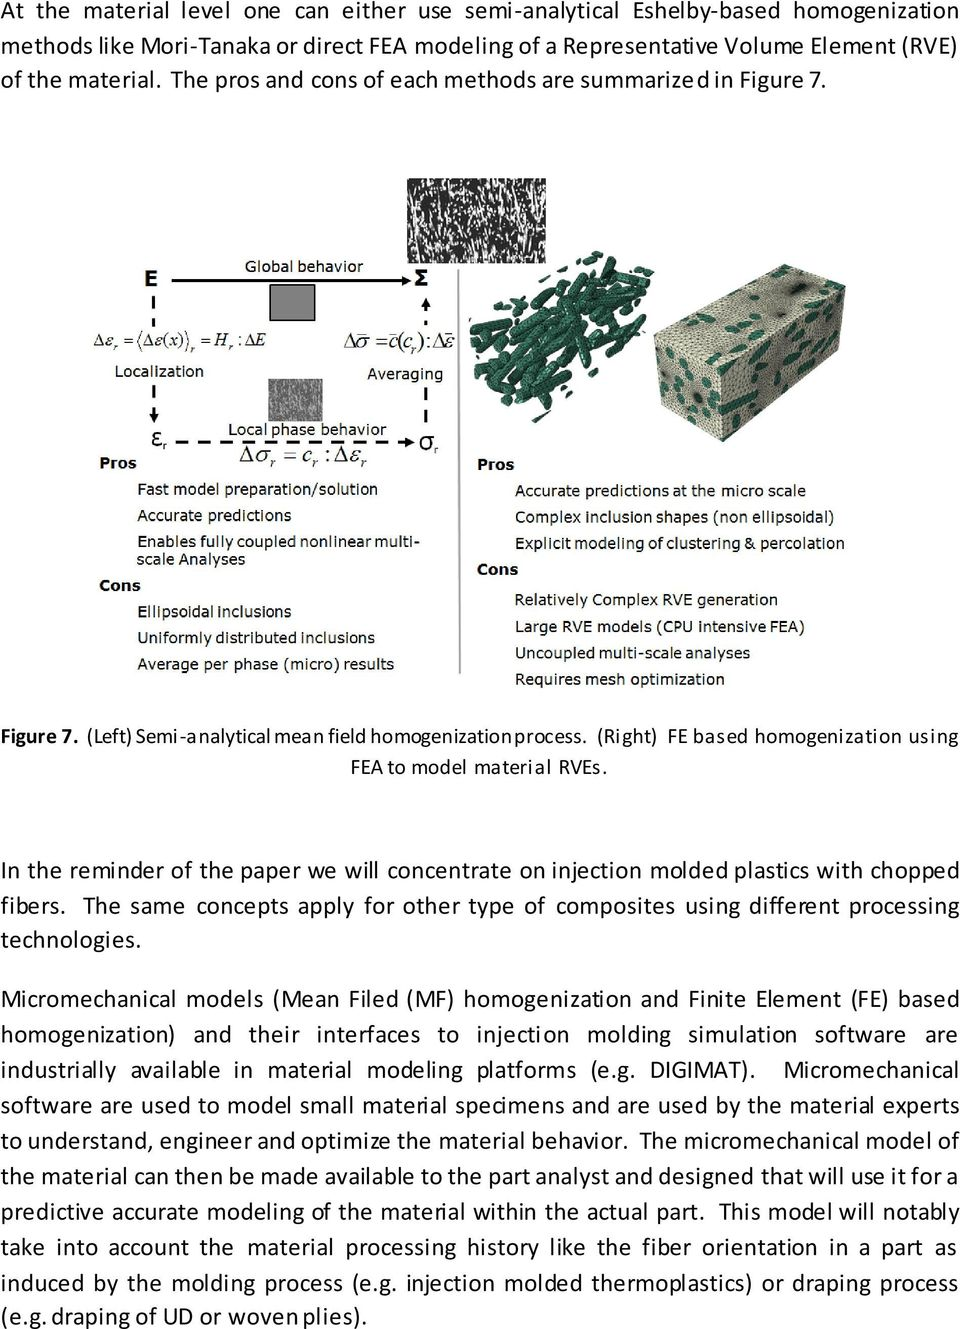 In the reminder of the paper we will concentrate on injection molded plastics with chopped fibers. The same concepts apply for other type of composites using different processing technologies.